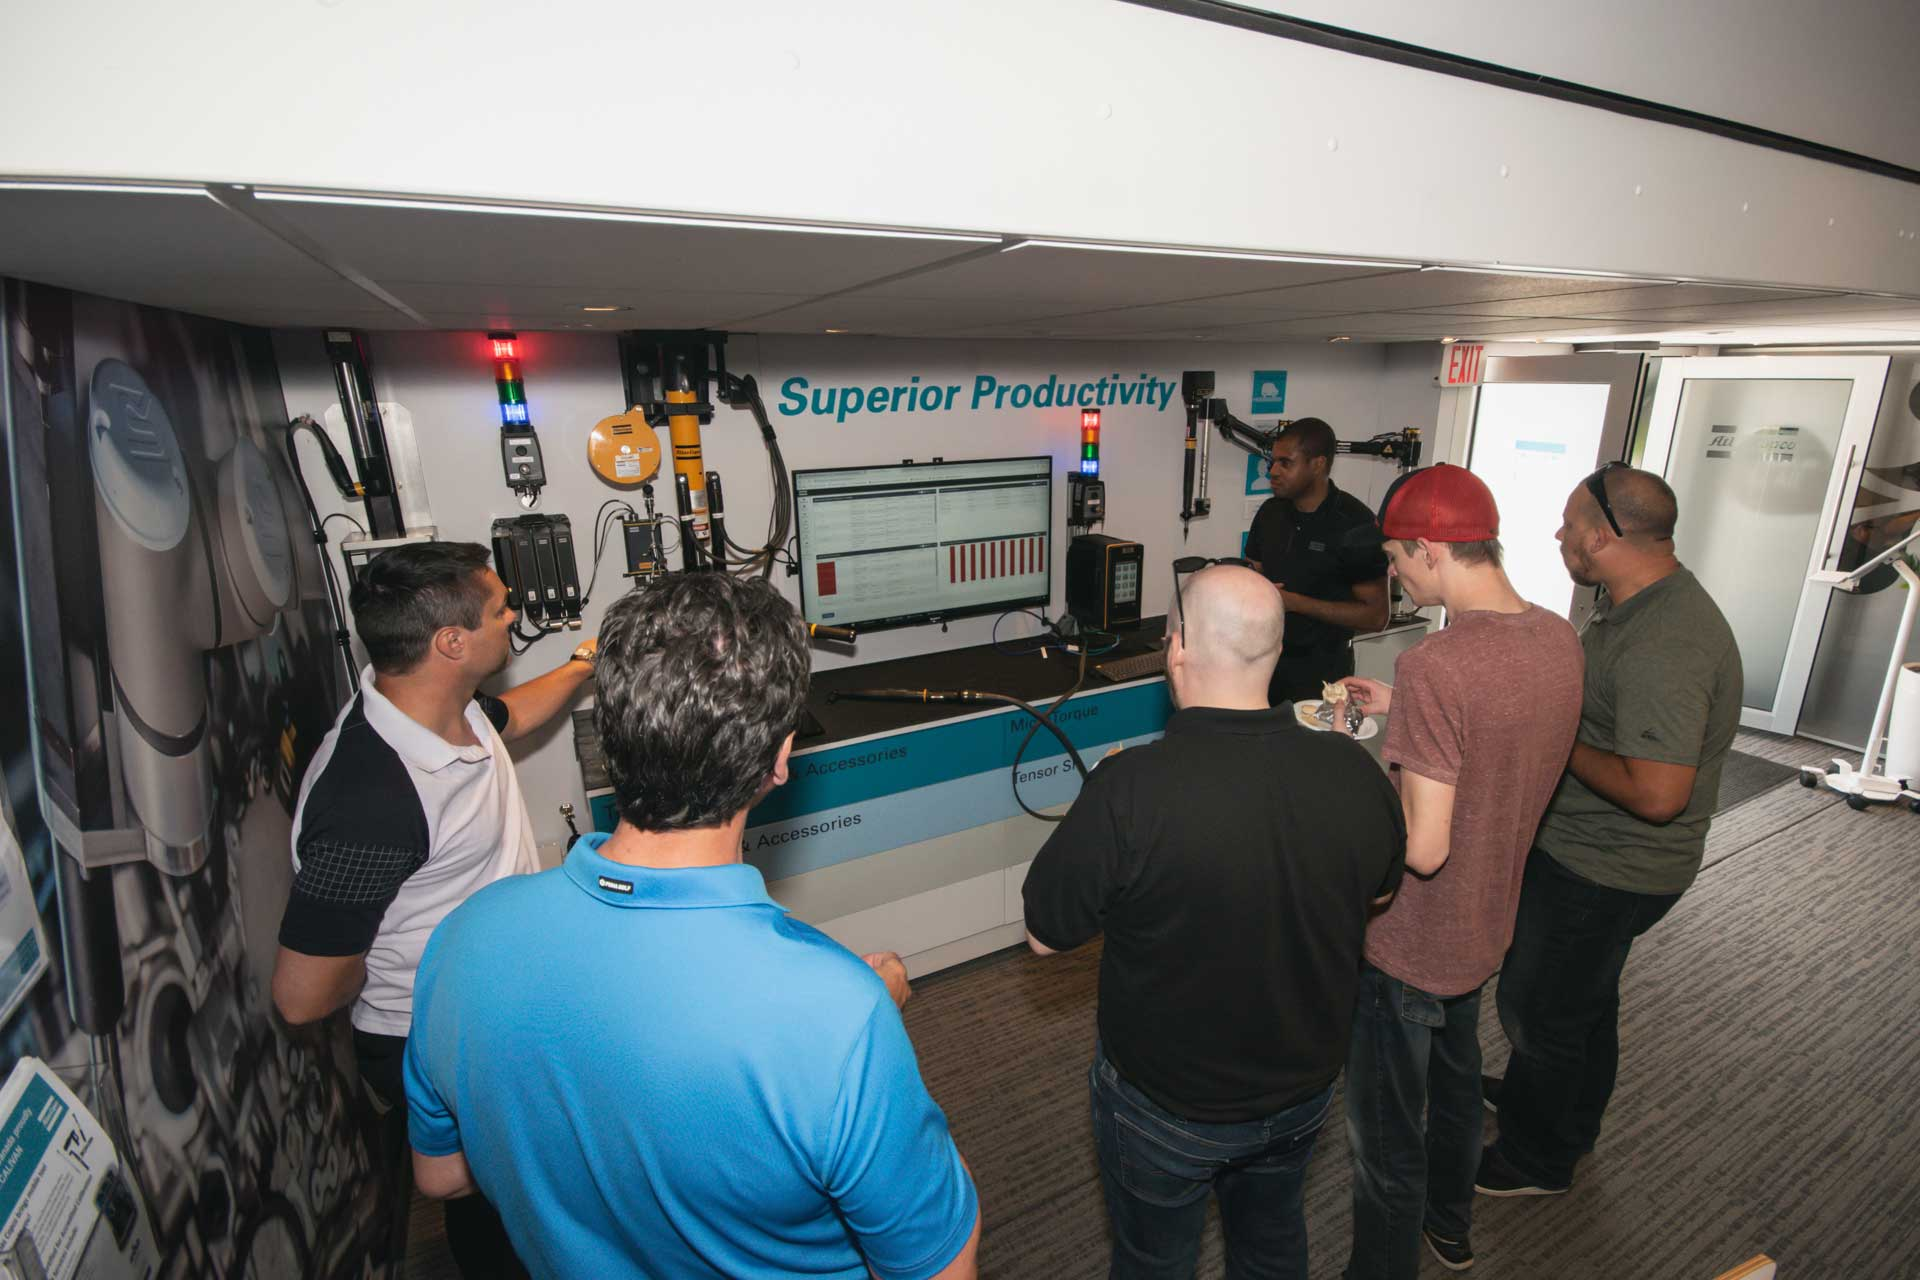 Atlas Copco Smart Connected Roadshow at Valiant TMS